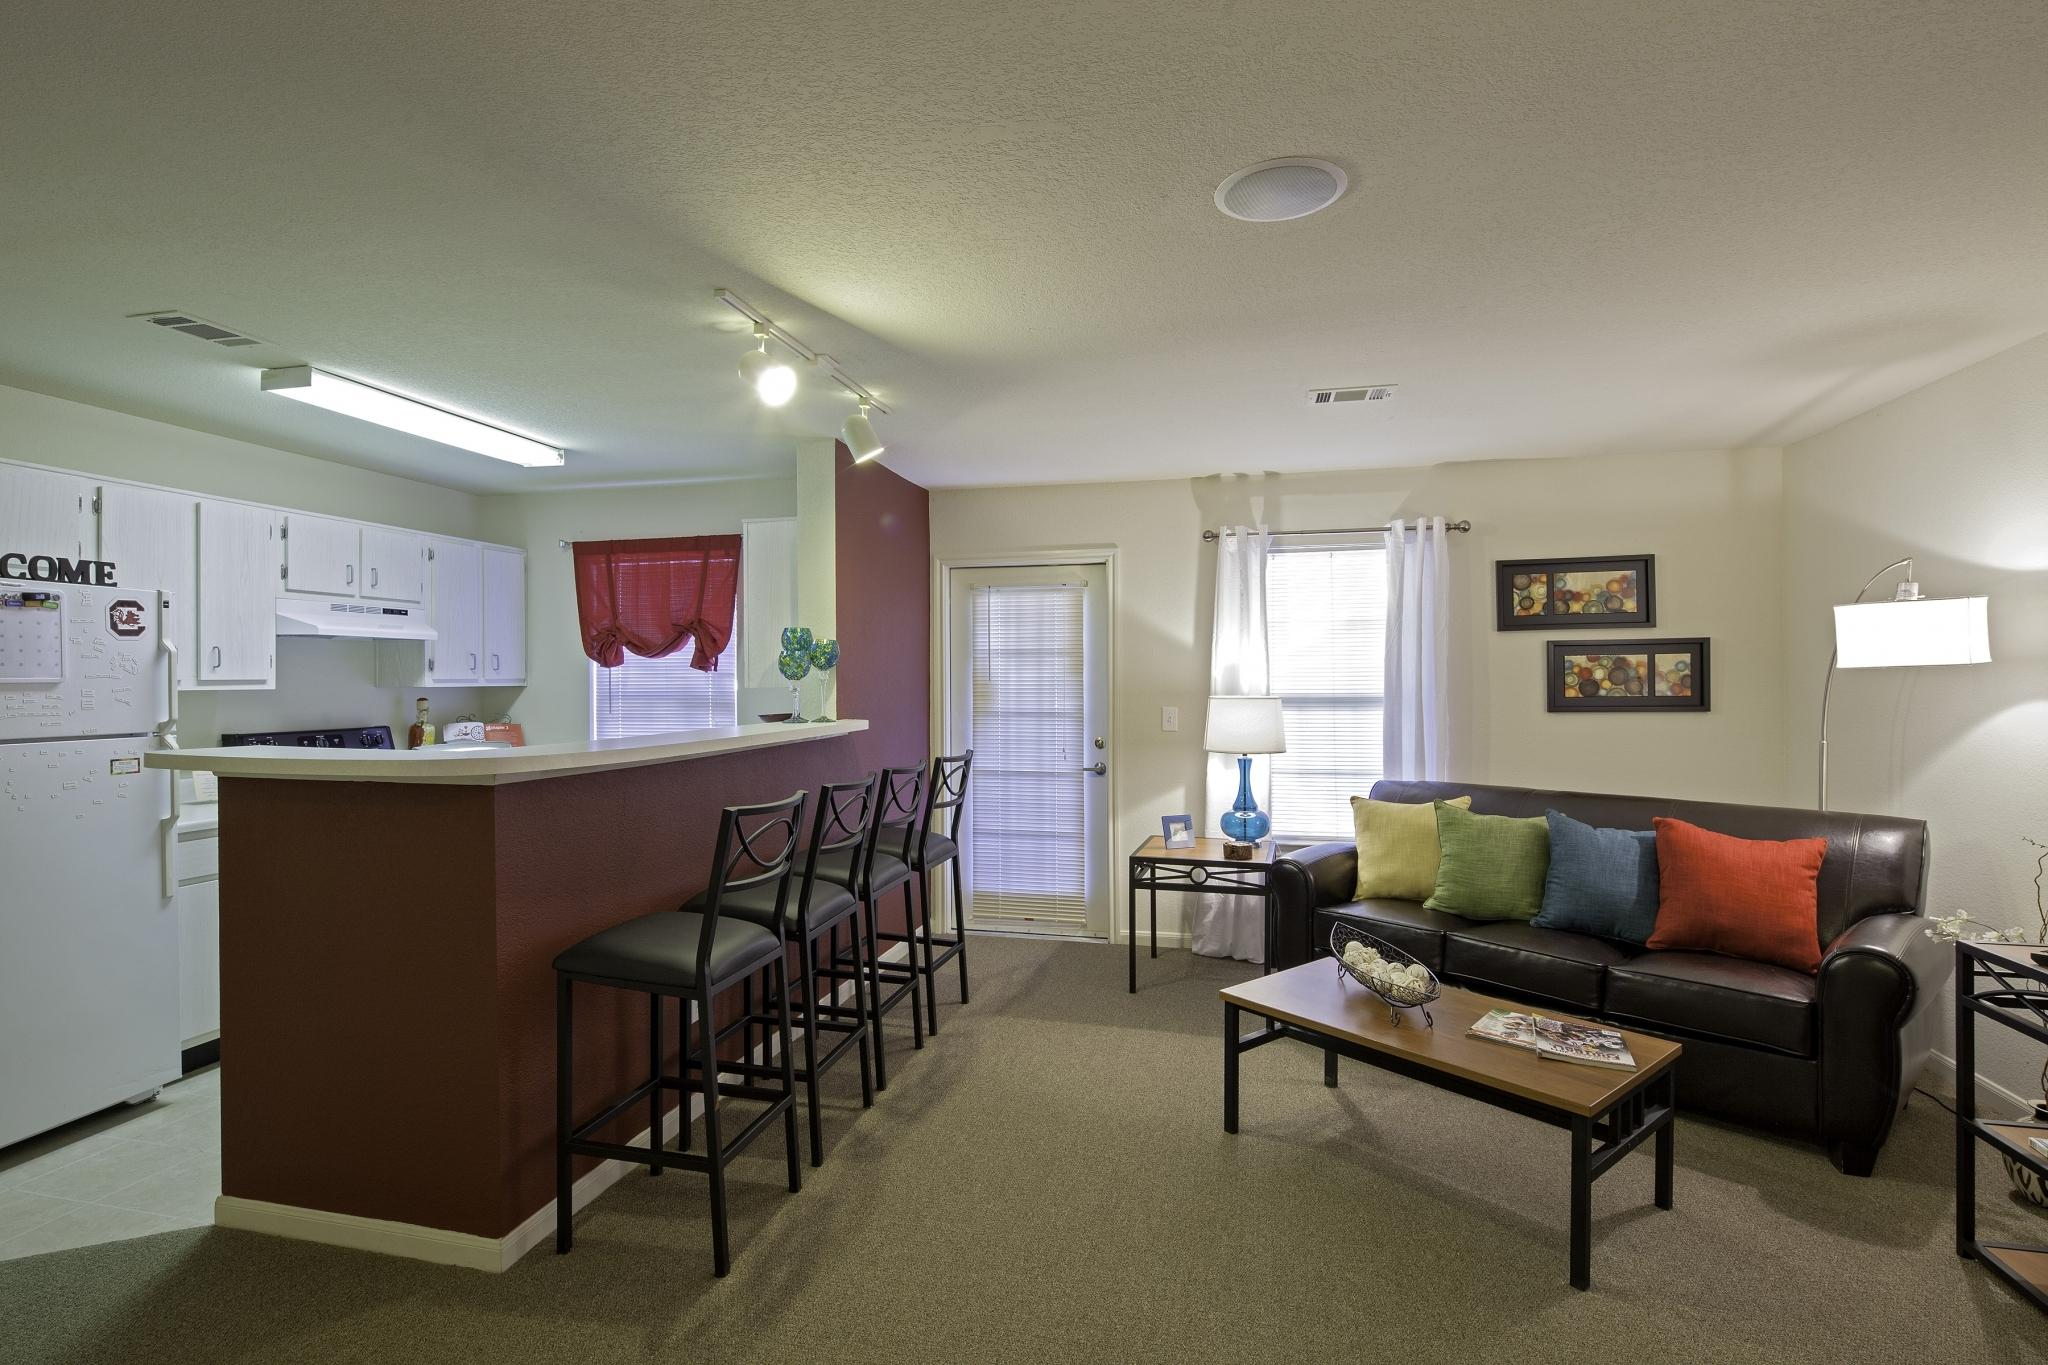 Cayce Cove Usc Student Housing